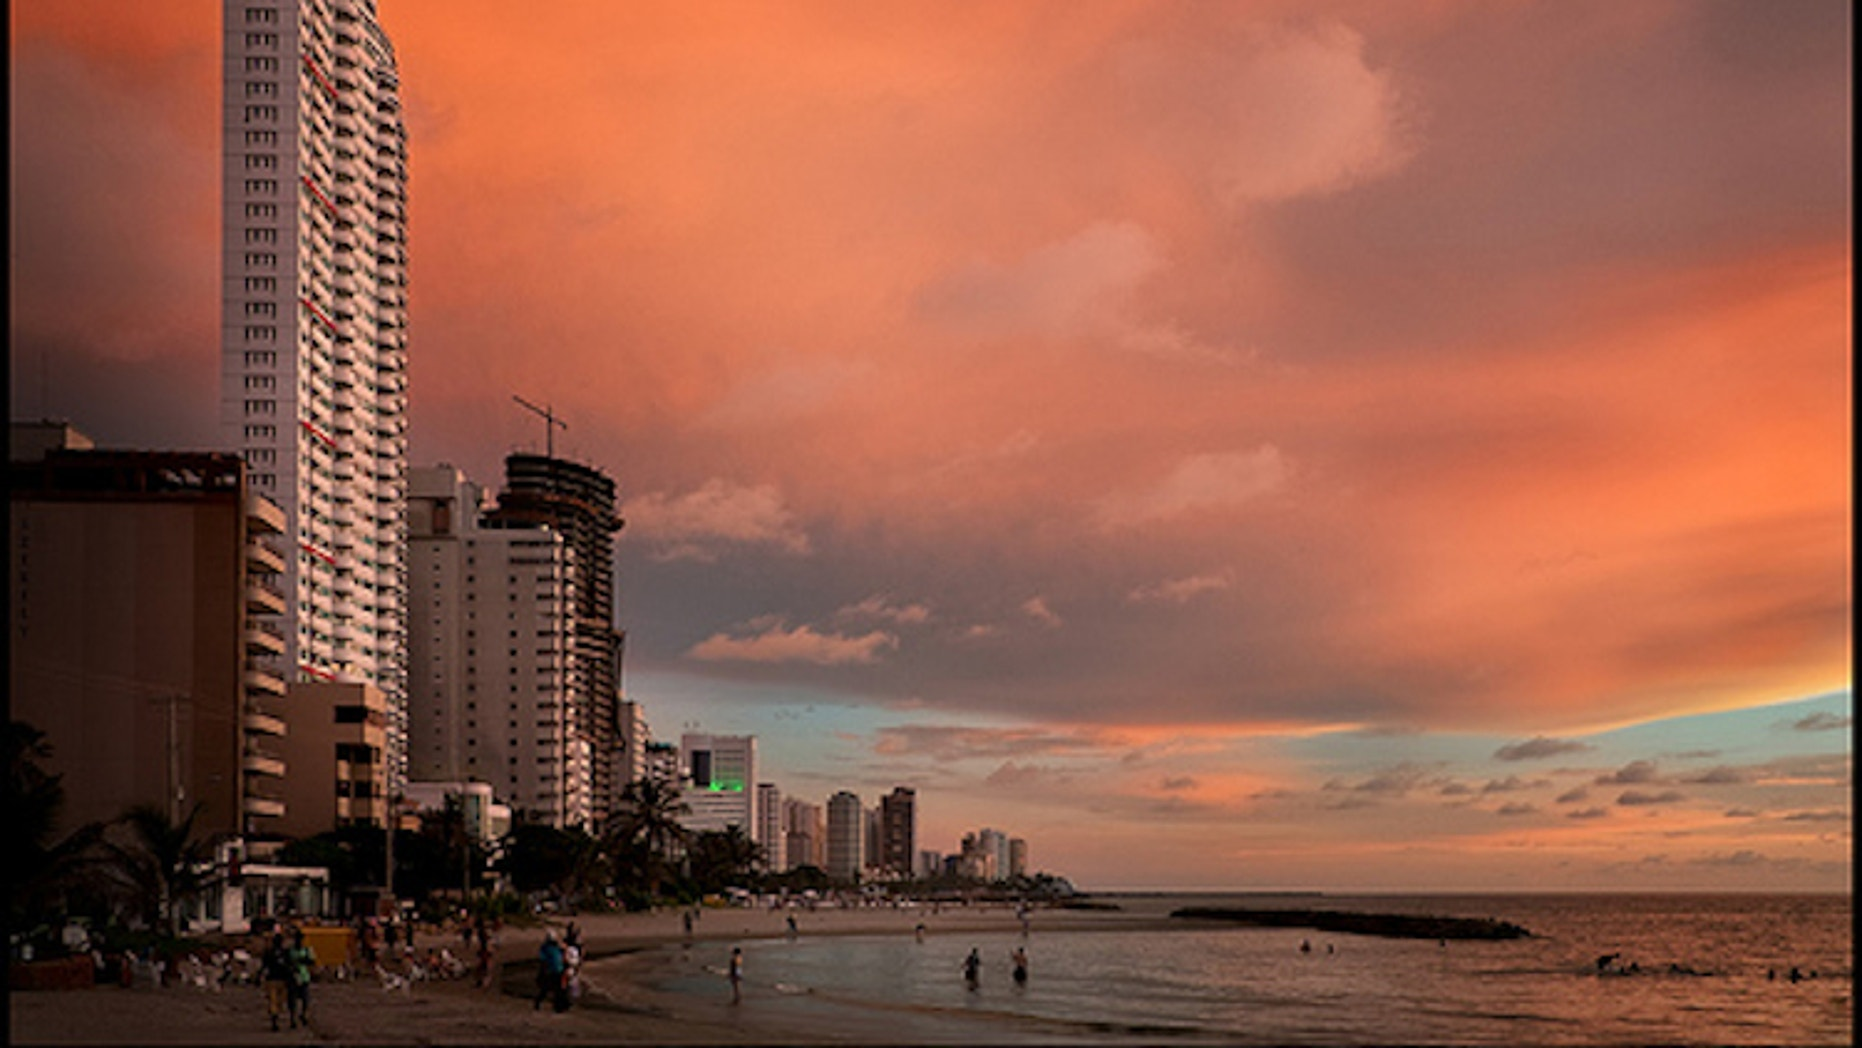 Bocagrande (big mouth) is one of the tourist beaches of Cartagena.